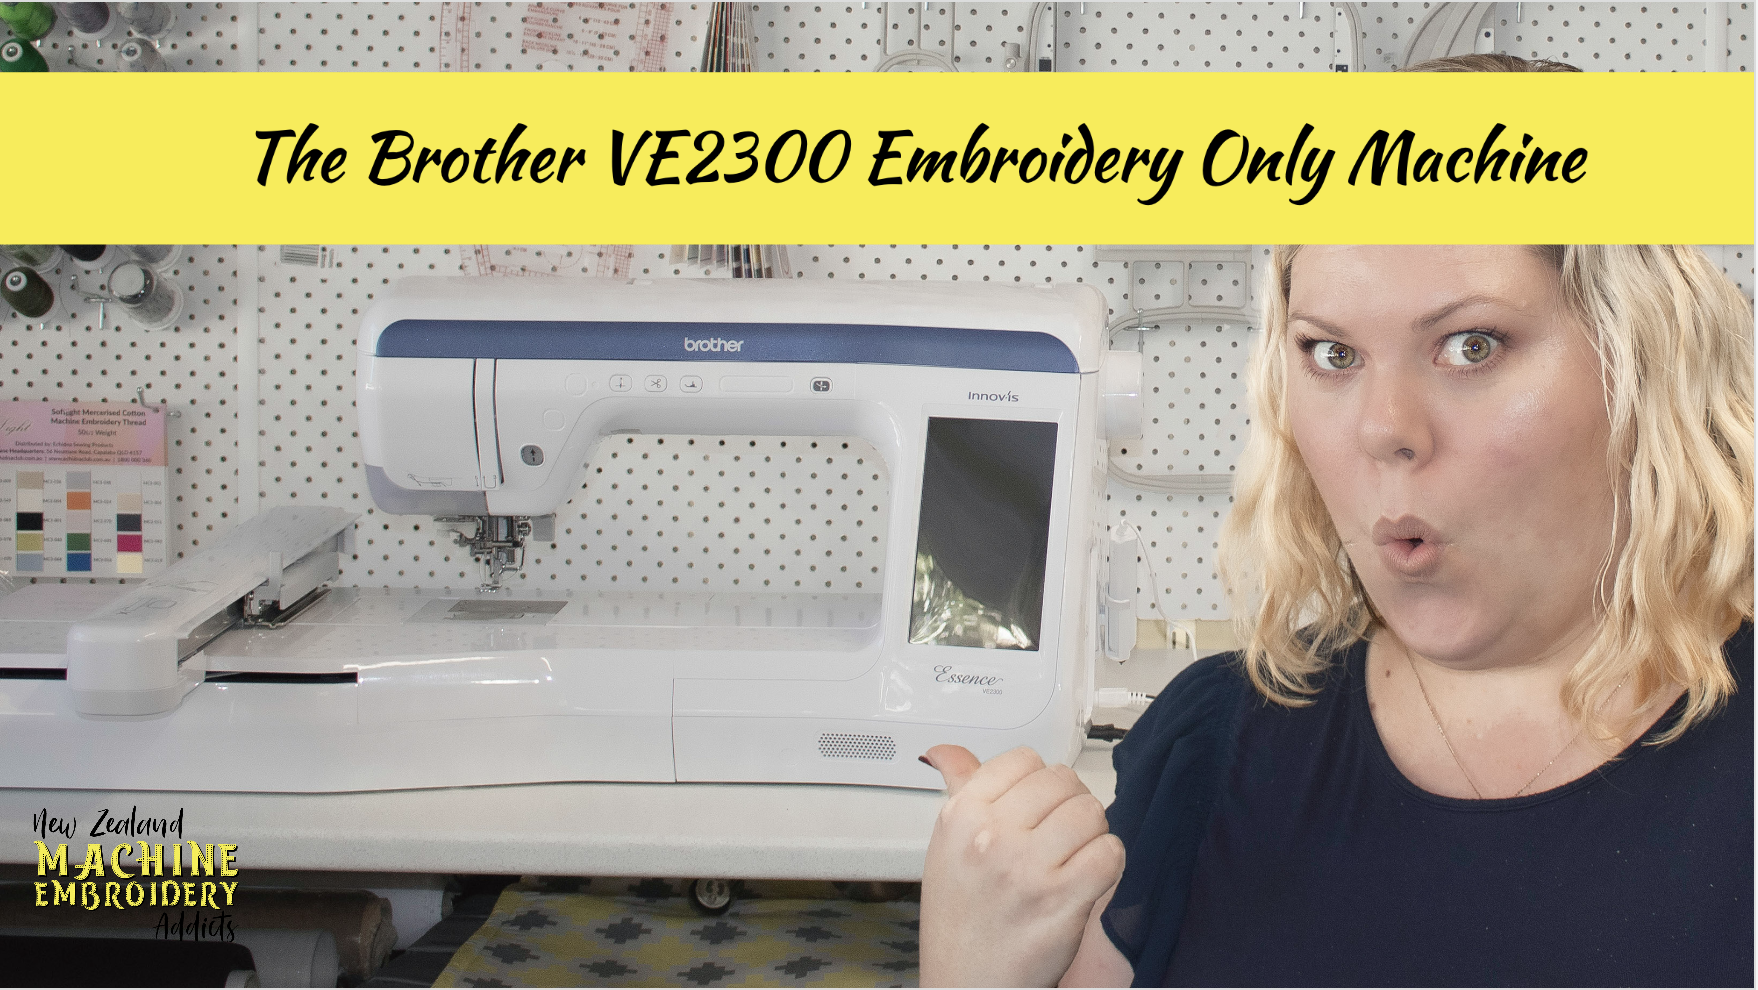 Brother VE2300 Embroidery Machine